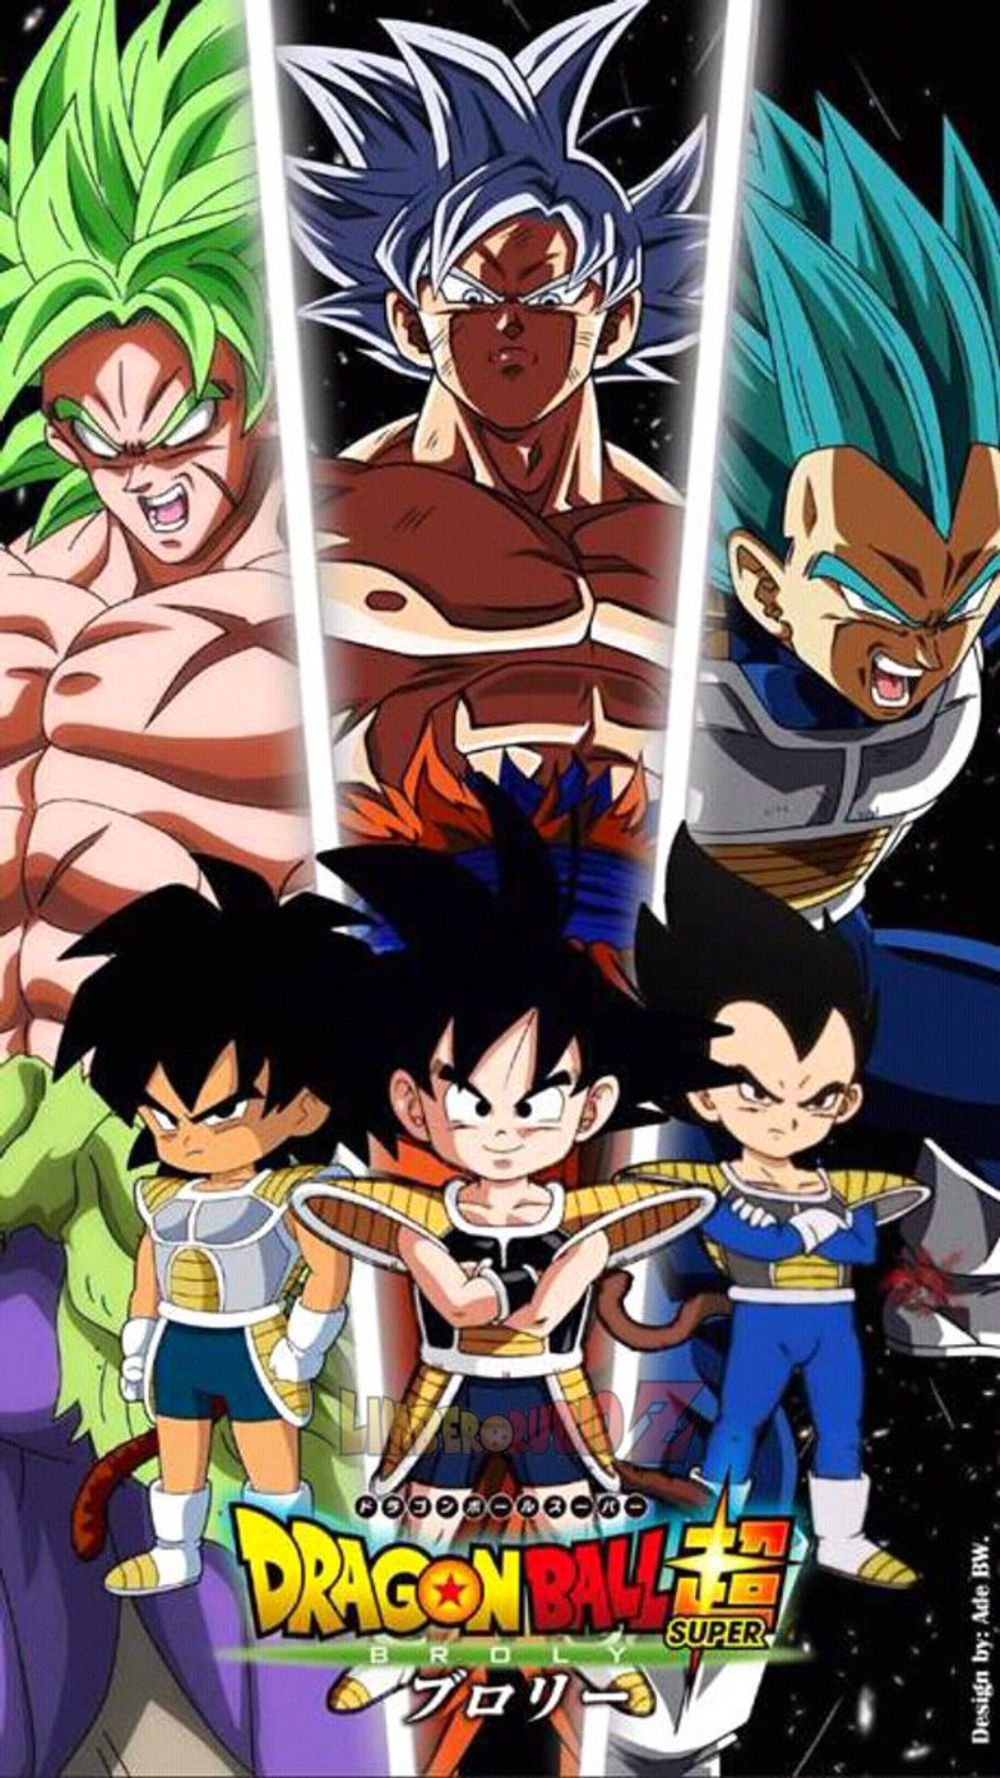 1-Dragon Ball Super: Broly